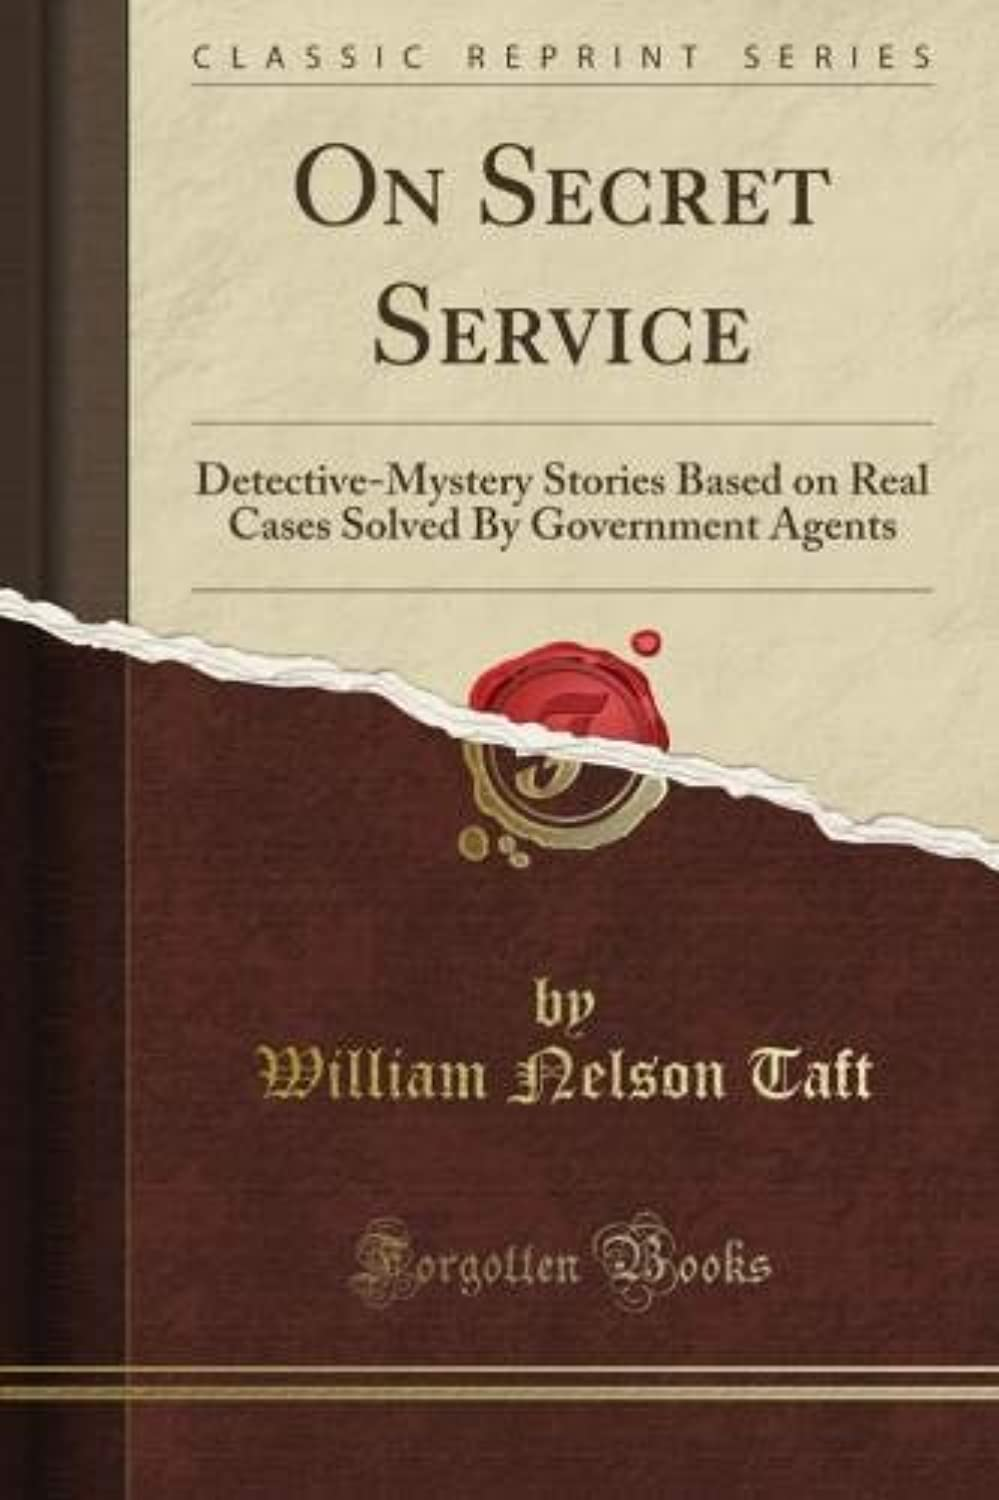 On Secret Service: Detective-Mystery Stories Based on Real Cases Solved By Government Agents (Classic Reprint)